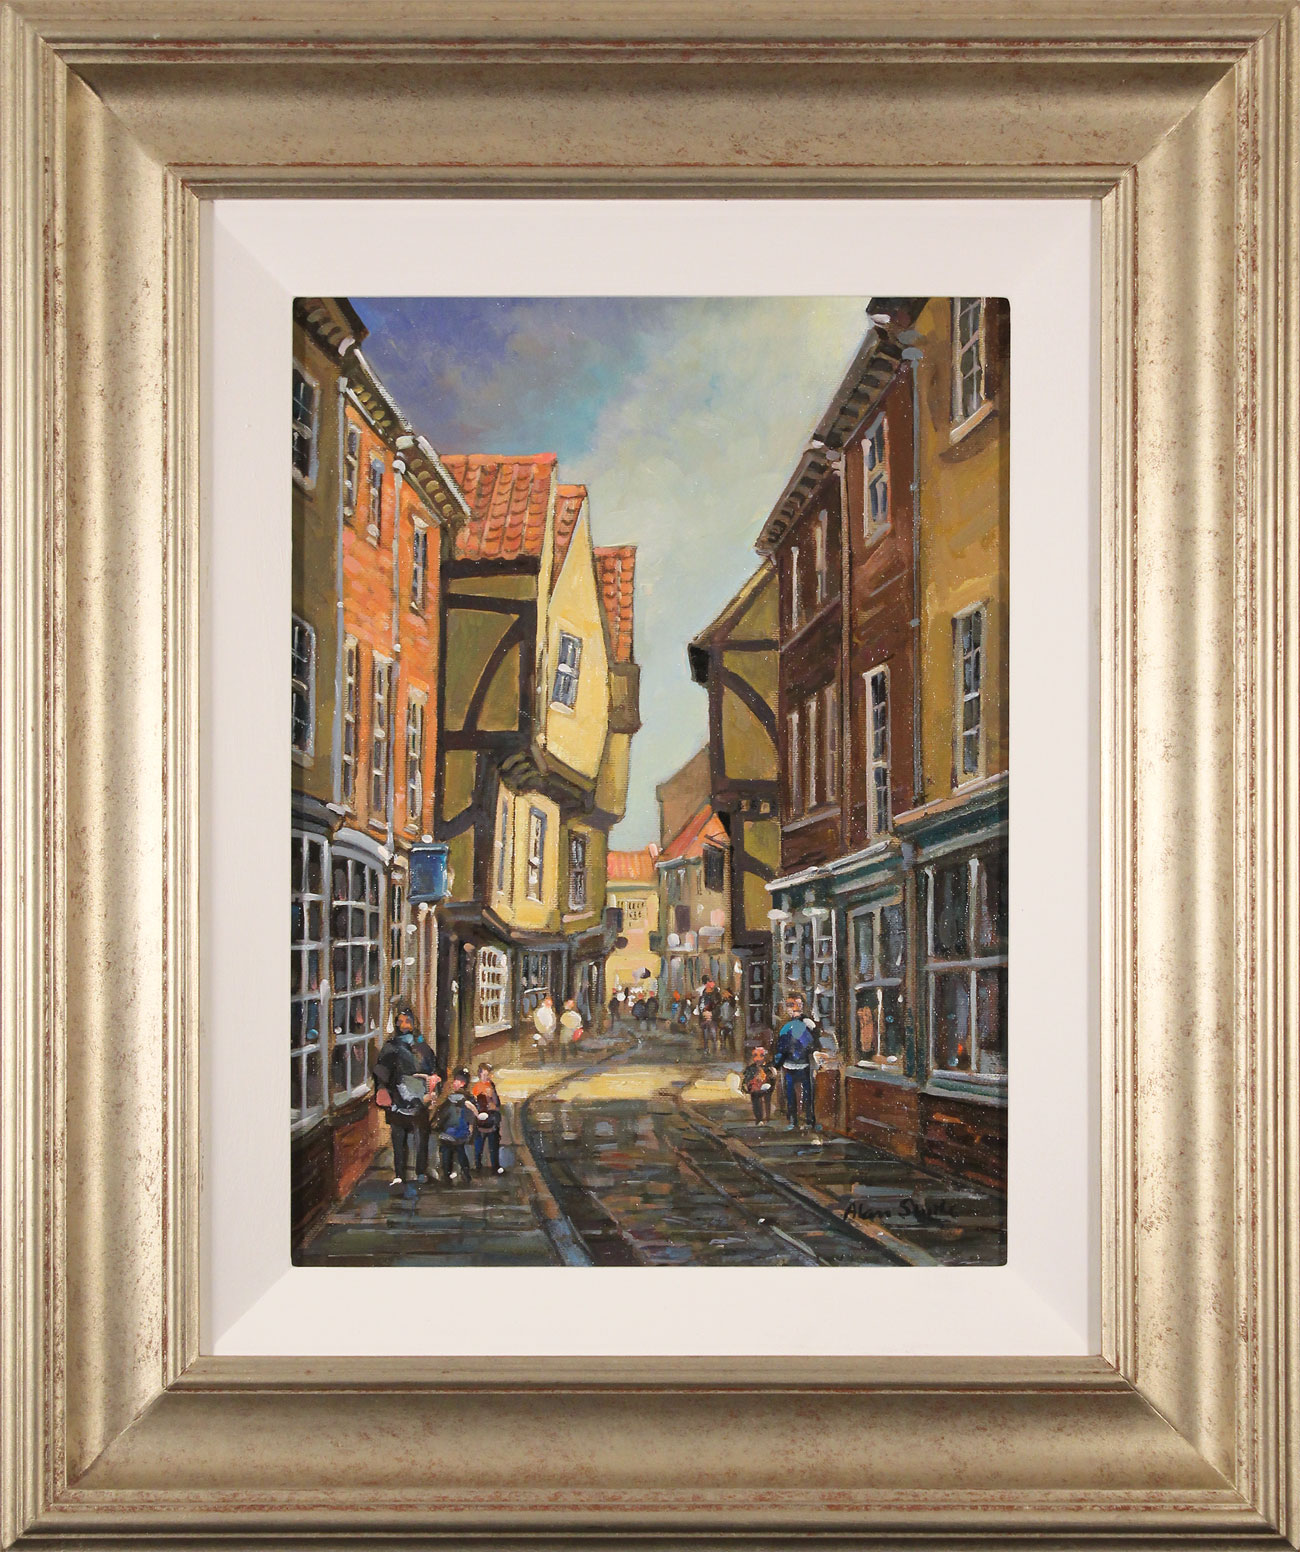 Alan Stuttle, Original oil painting on canvas, The Shambles, York, click to enlarge